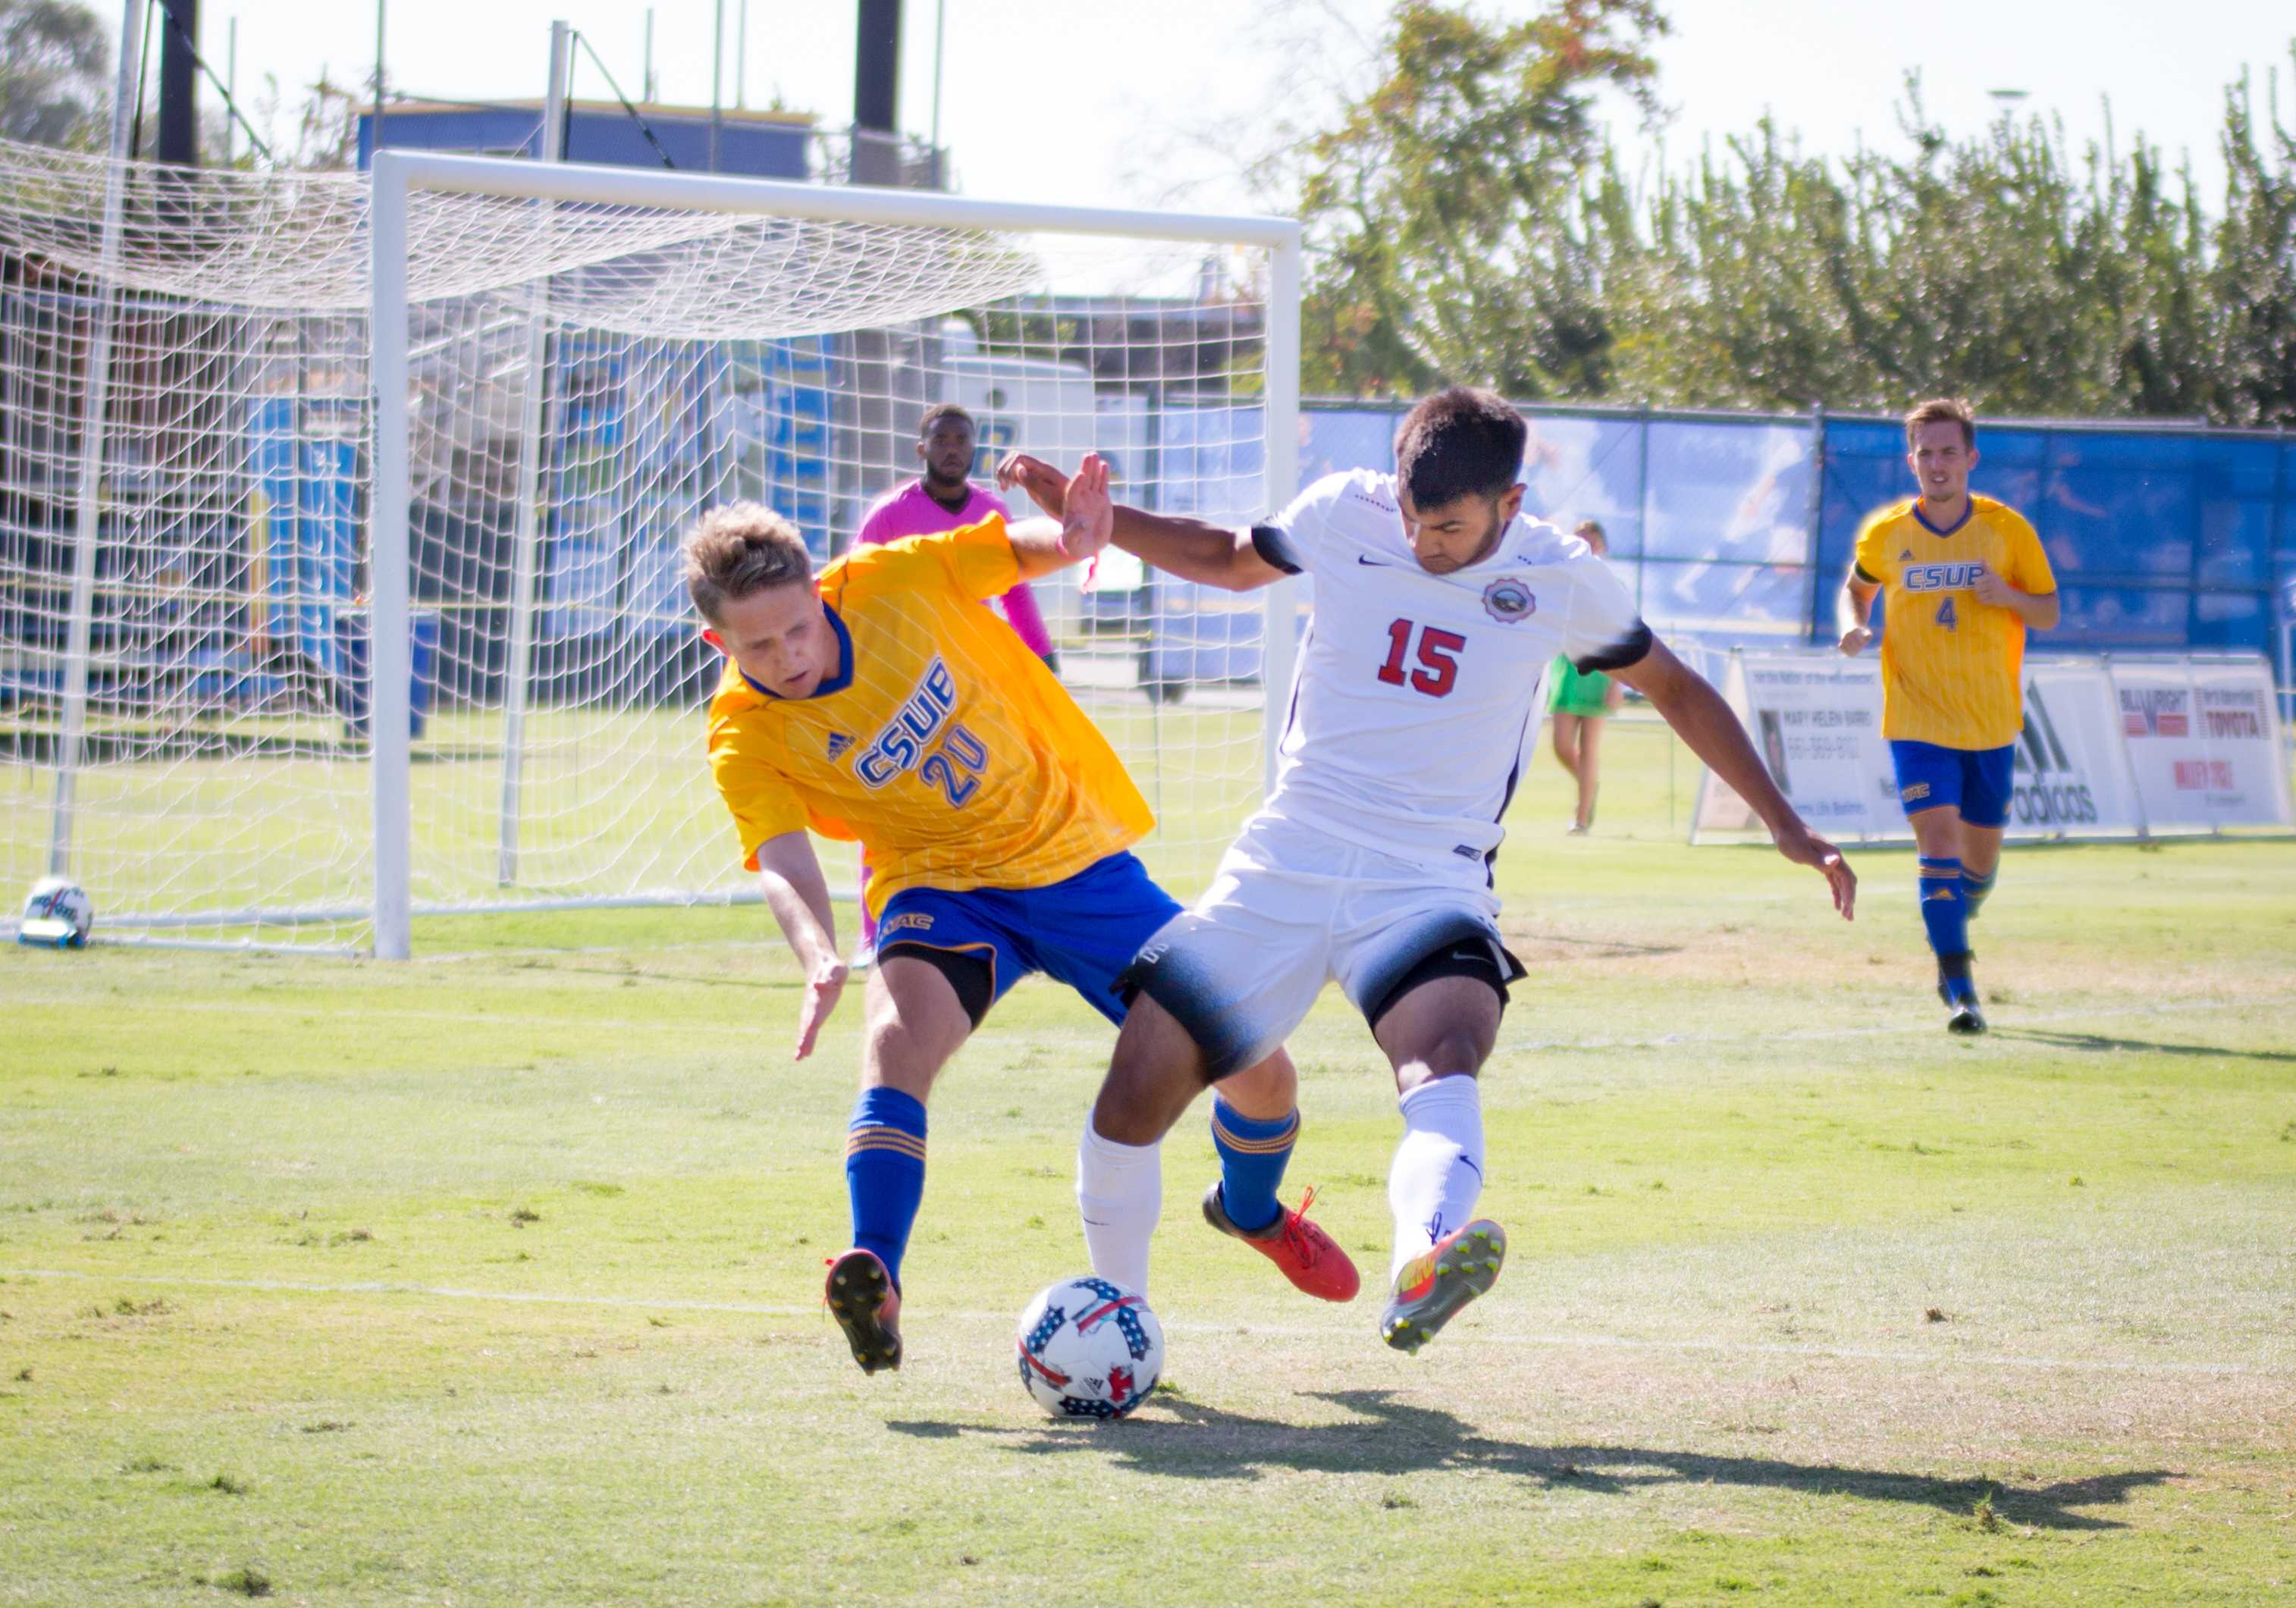 CSUB gets into WAC tourney as sixth seed